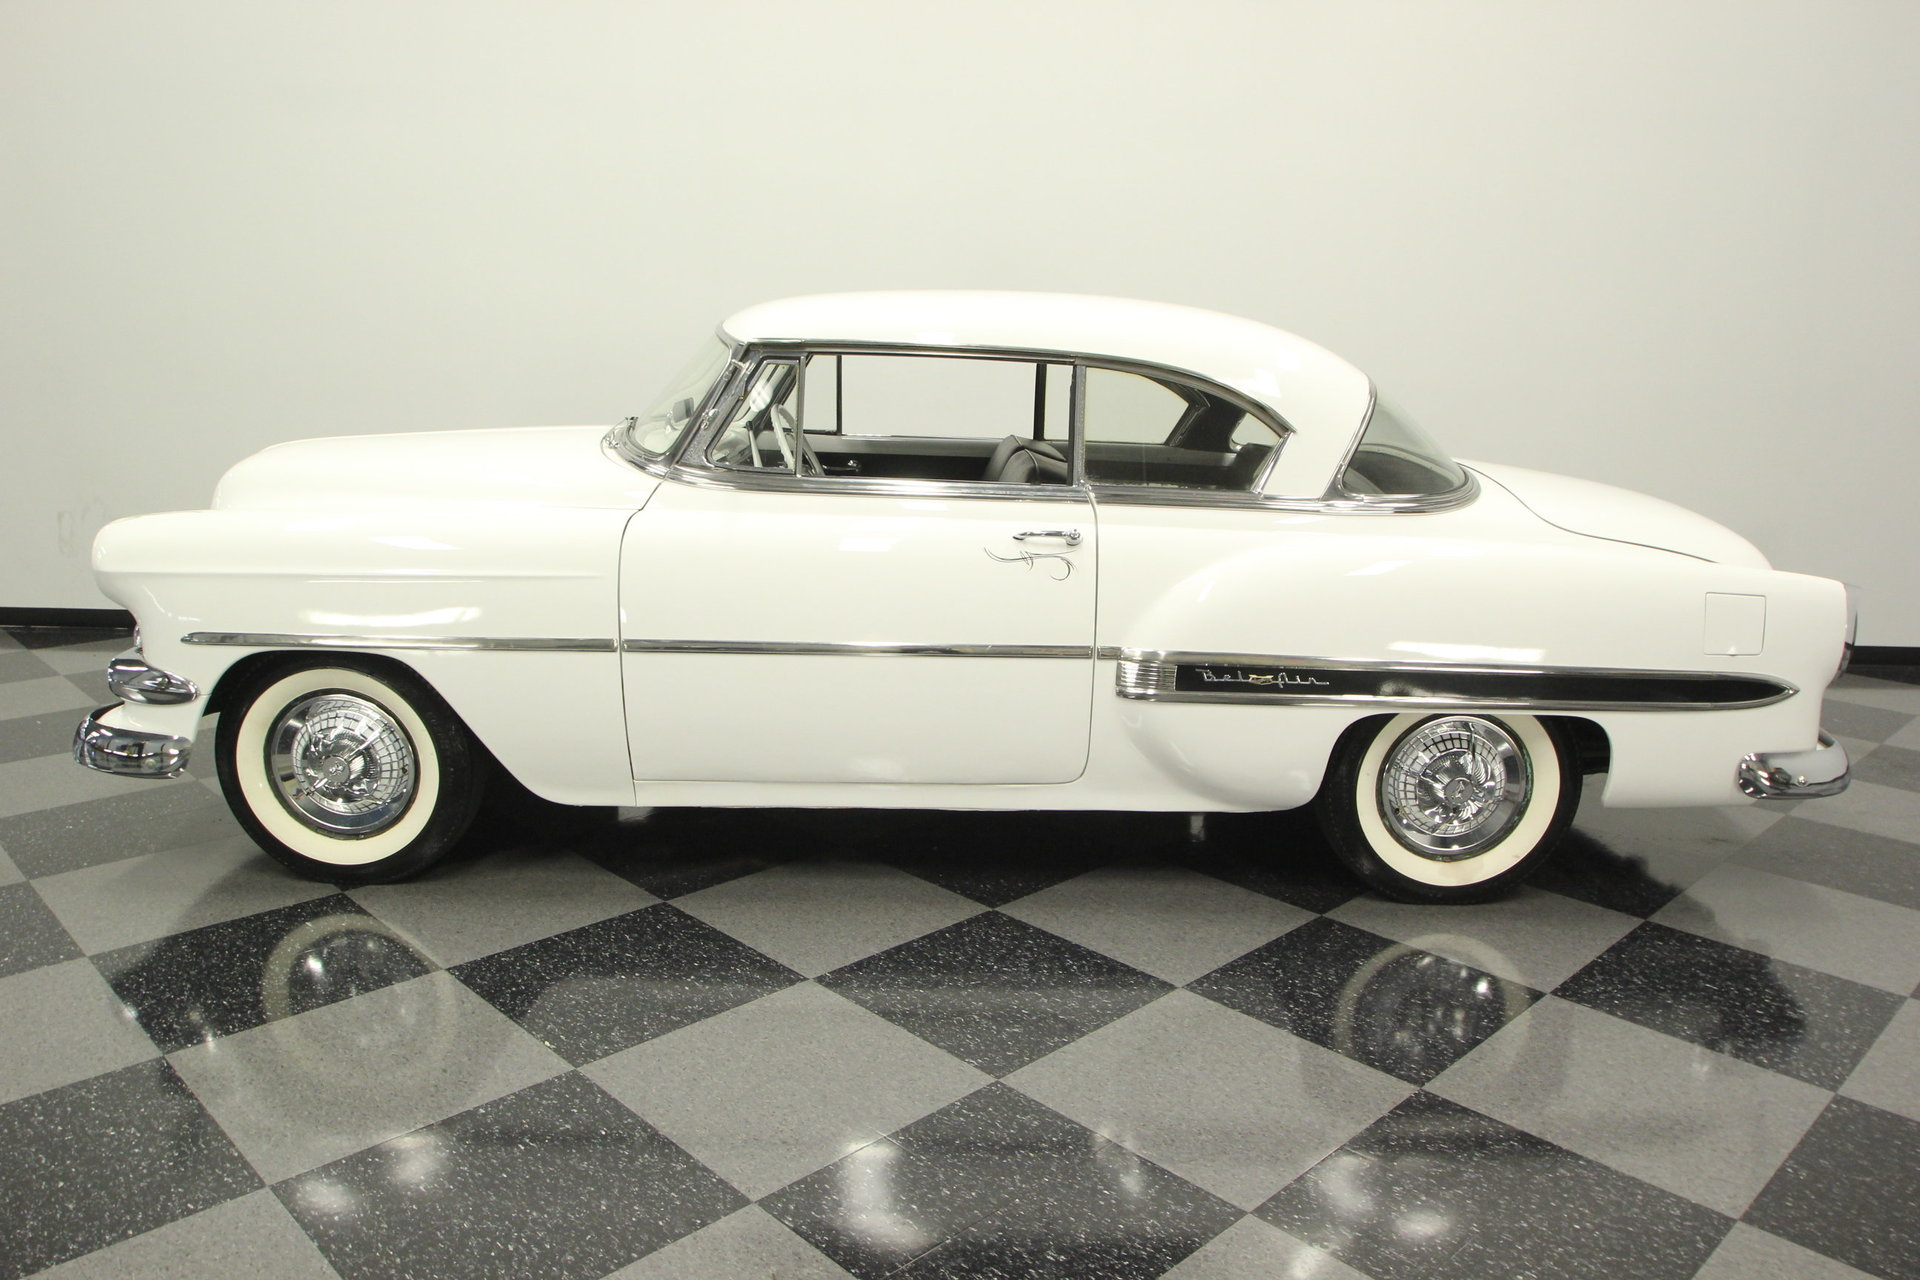 1954 Chevrolet Bel Air Streetside Classics The Nations Trusted Chevy Show More Photos